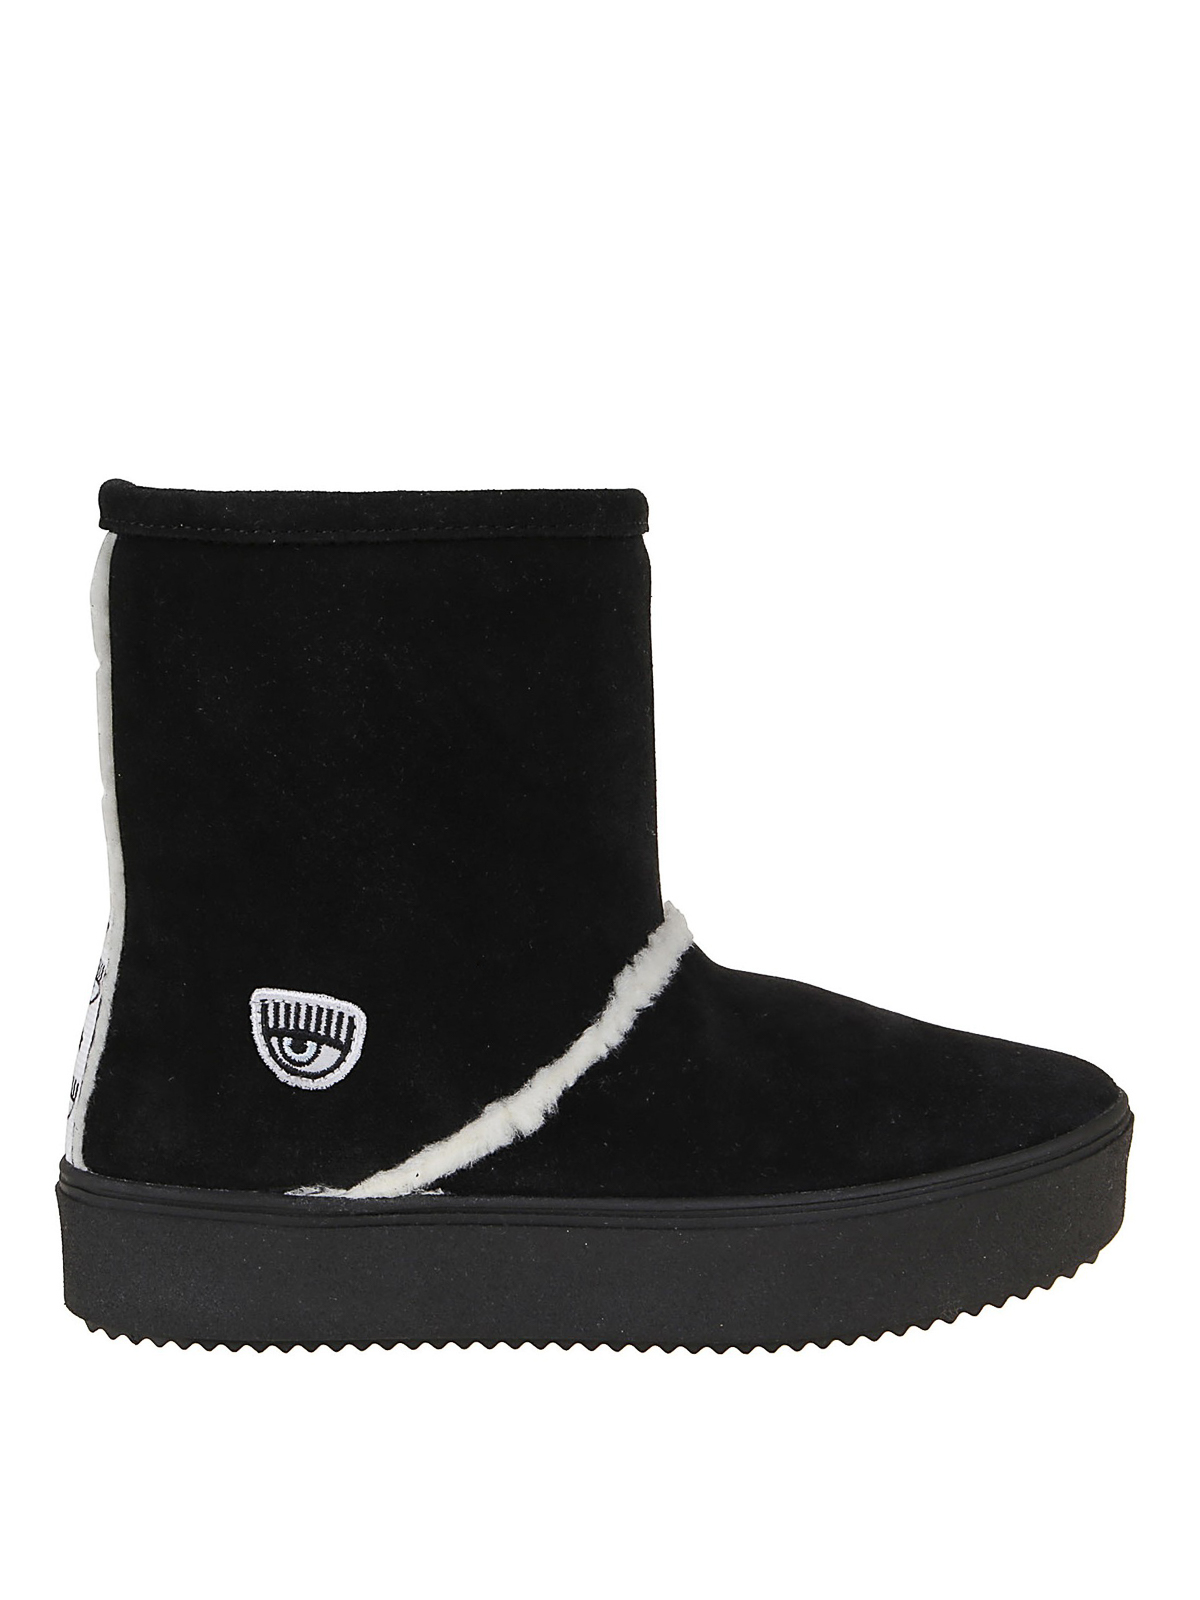 Chiara Ferragni SUEDE BOOT WITH LOGO BAND